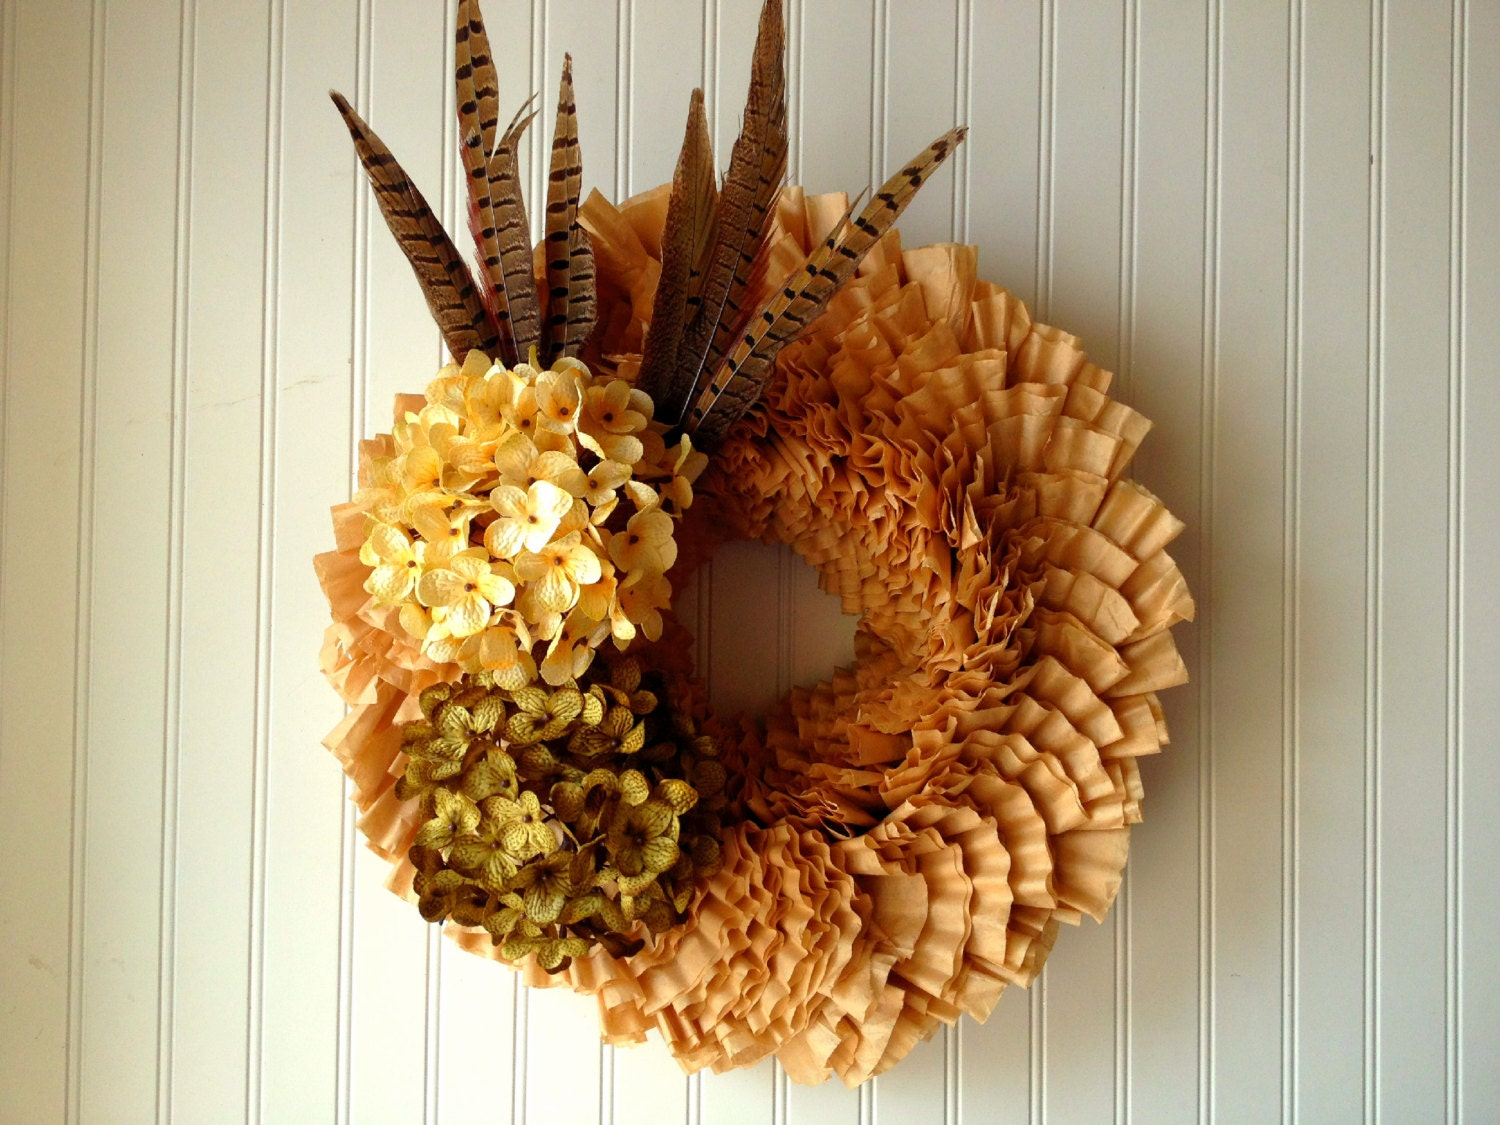 Coffee filter wreath for fall front door by YourHandmadeWreath